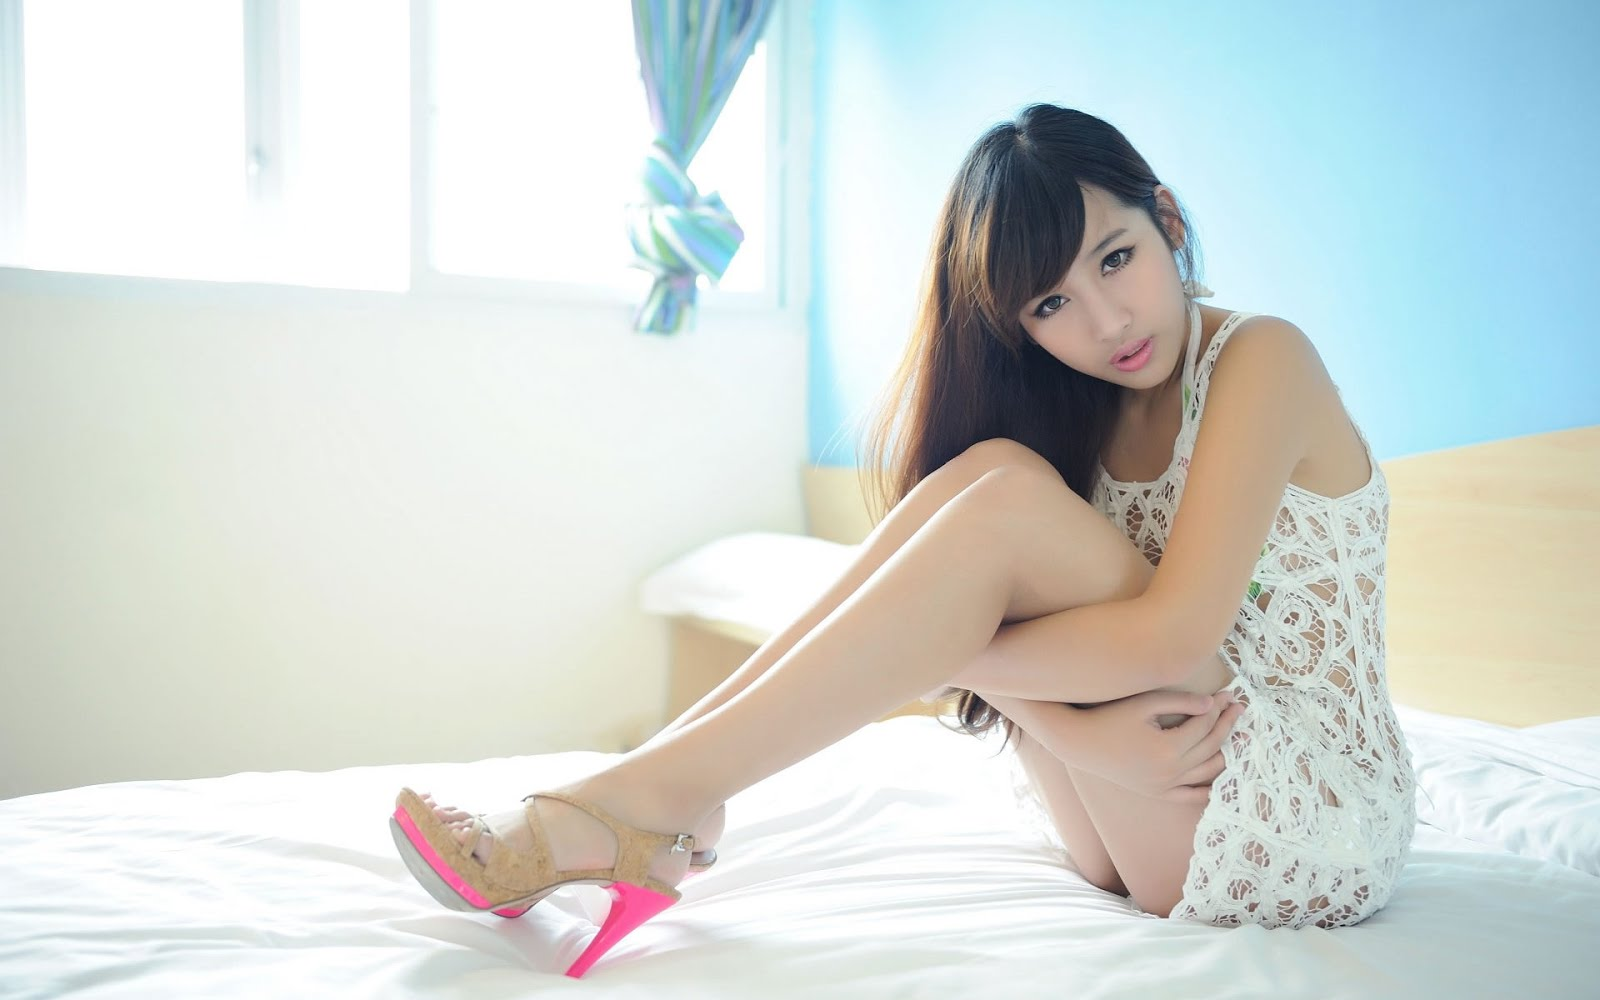 nulato asian girl personals Top 1000 ladies asiandatecom presents the very best of chinese, philippine, thai and other asian profiles seeking foreign partner for romantic companionship.